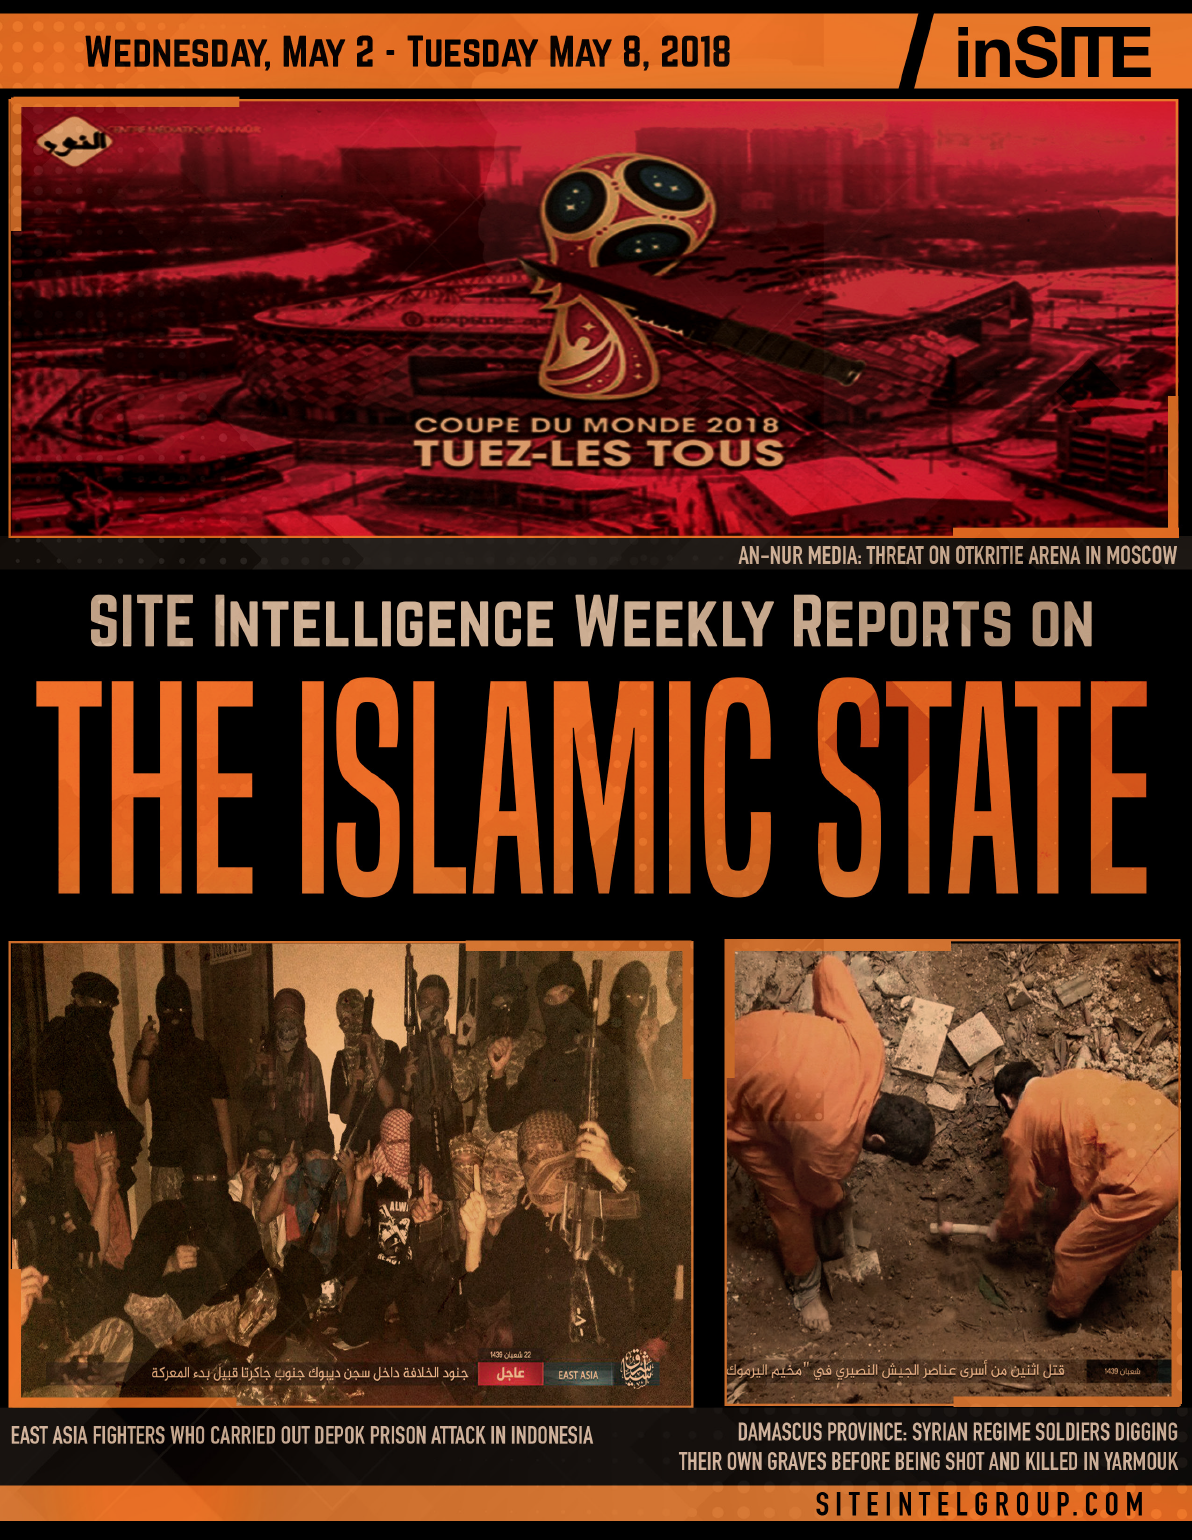 Weekly inSITE on the Islamic State for May 2-8, 2018